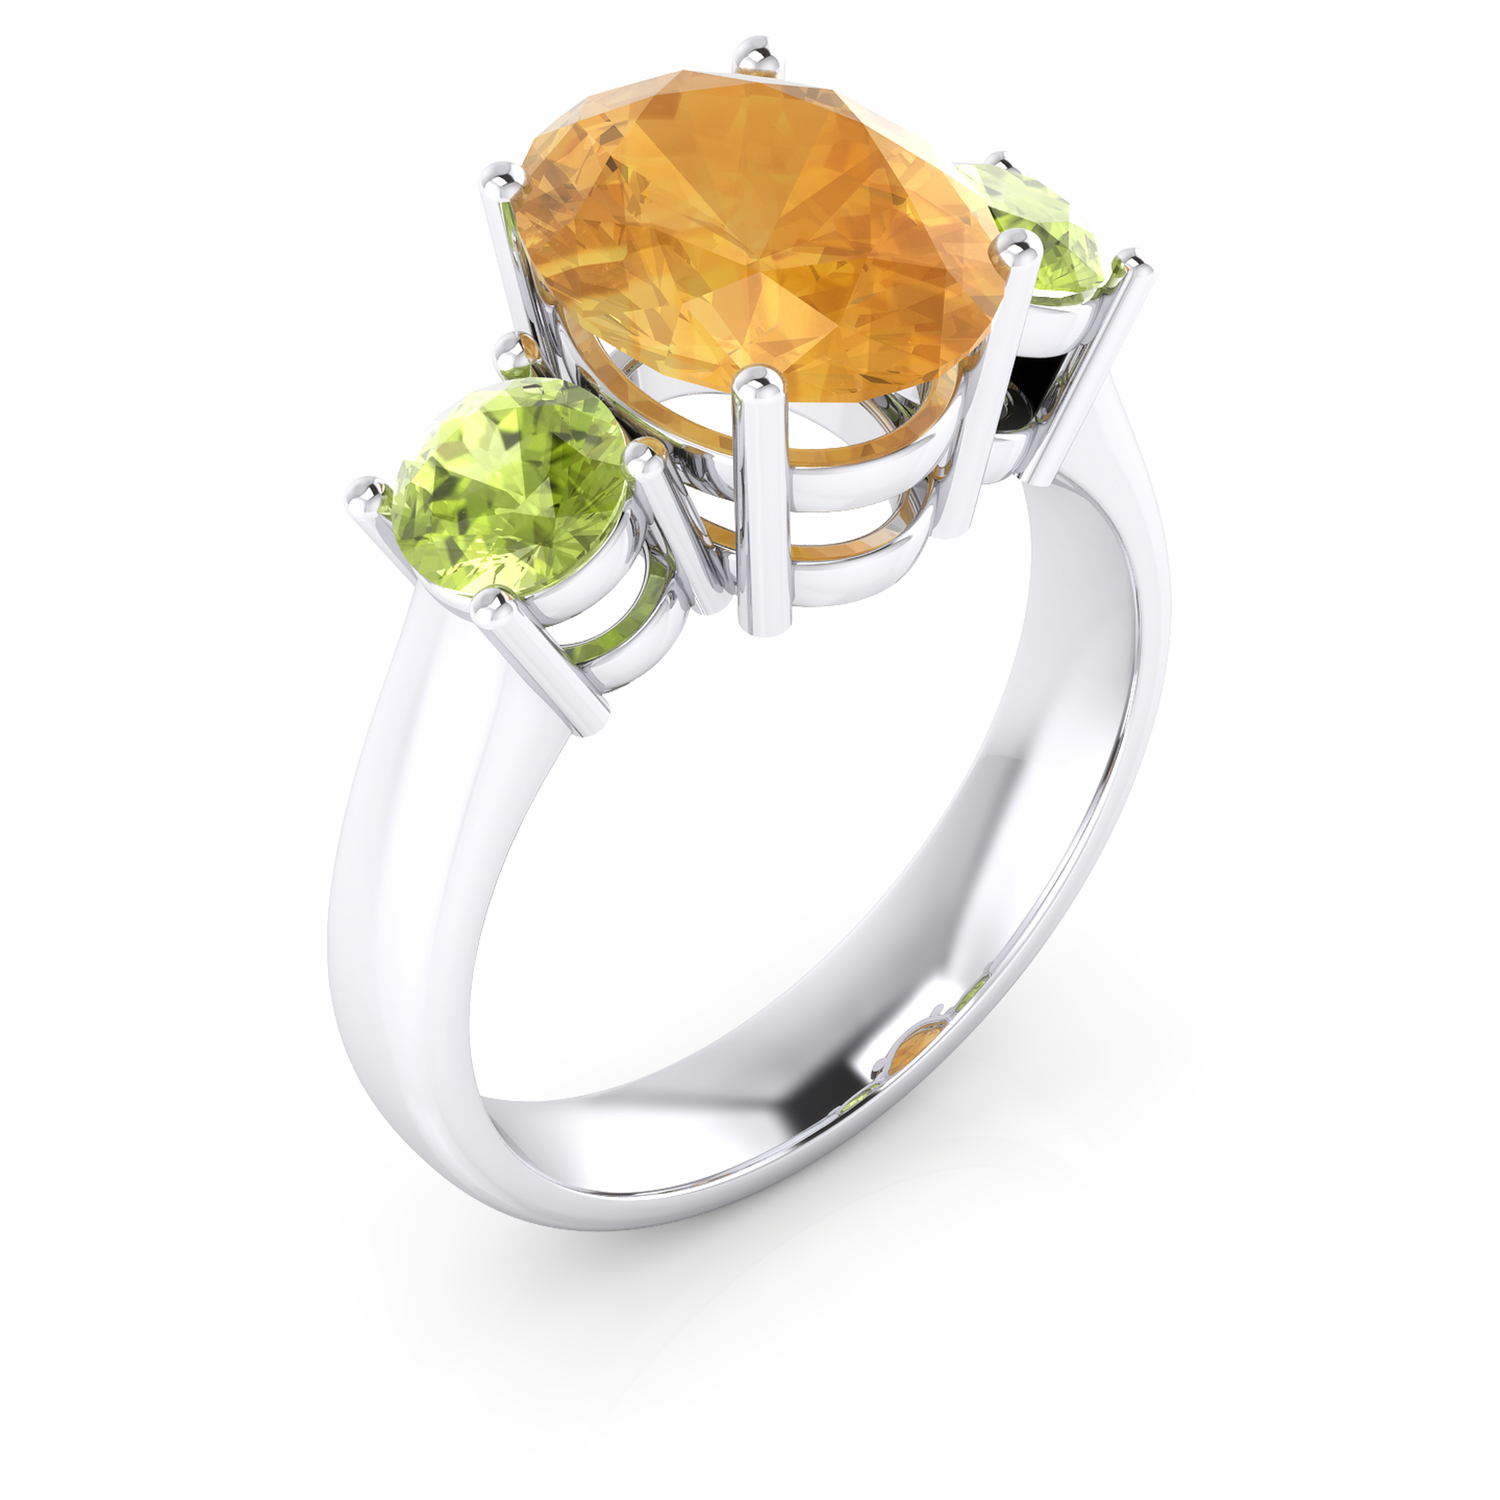 18kt white gold ring with Citrine Quartz and Peridots